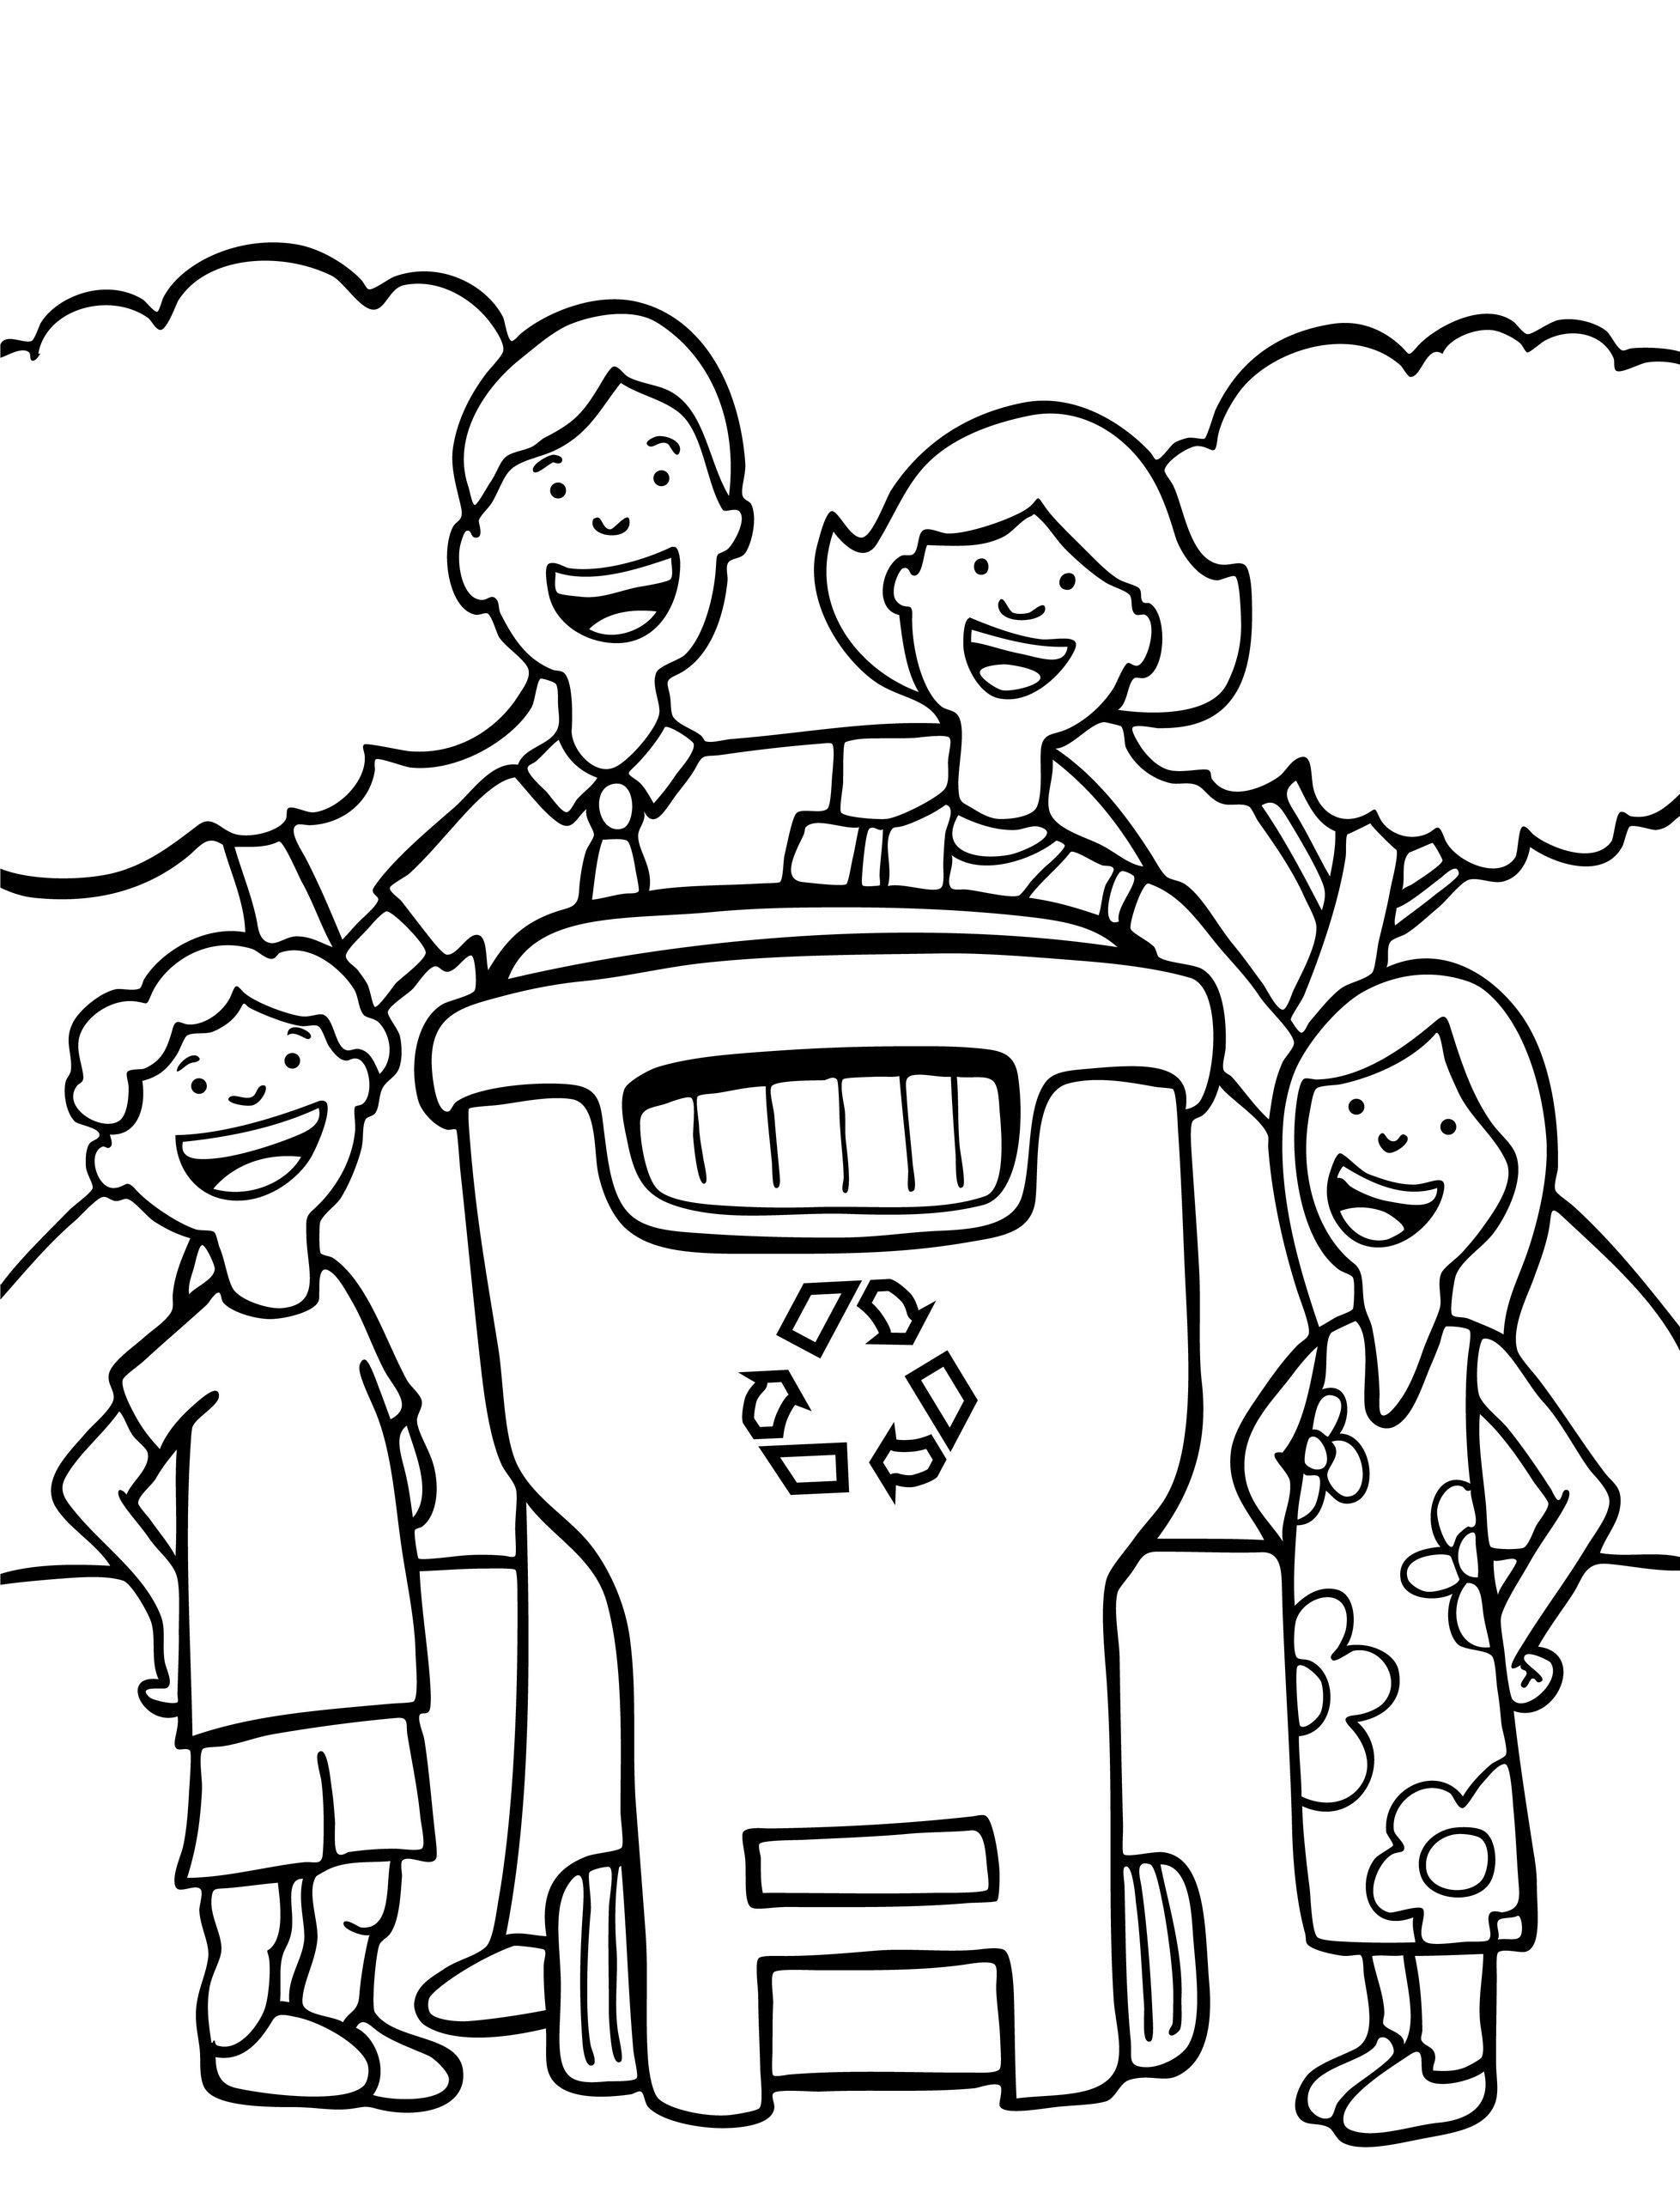 Recycle Coloring Page Earth Day Coloring Pages Coloring Books Earth Coloring Pages